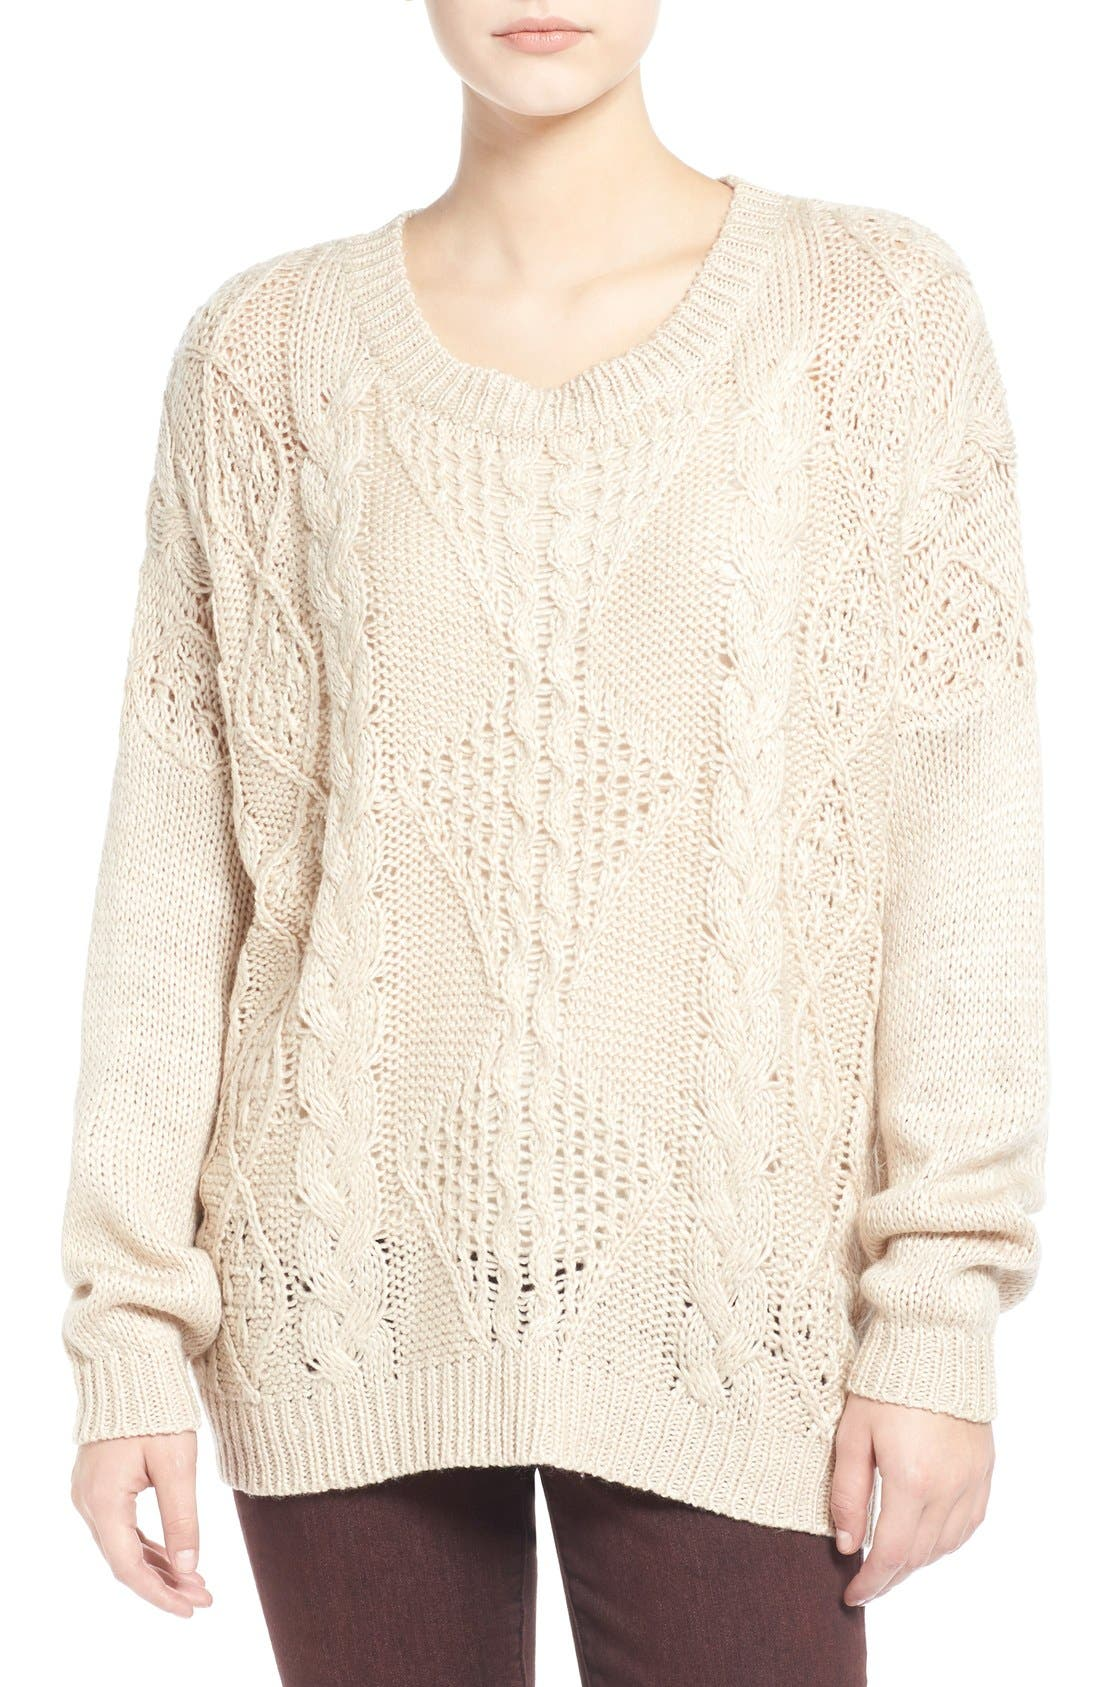 Alternate Image 1 Selected - Dreamers by Debut Cable Front Sweater